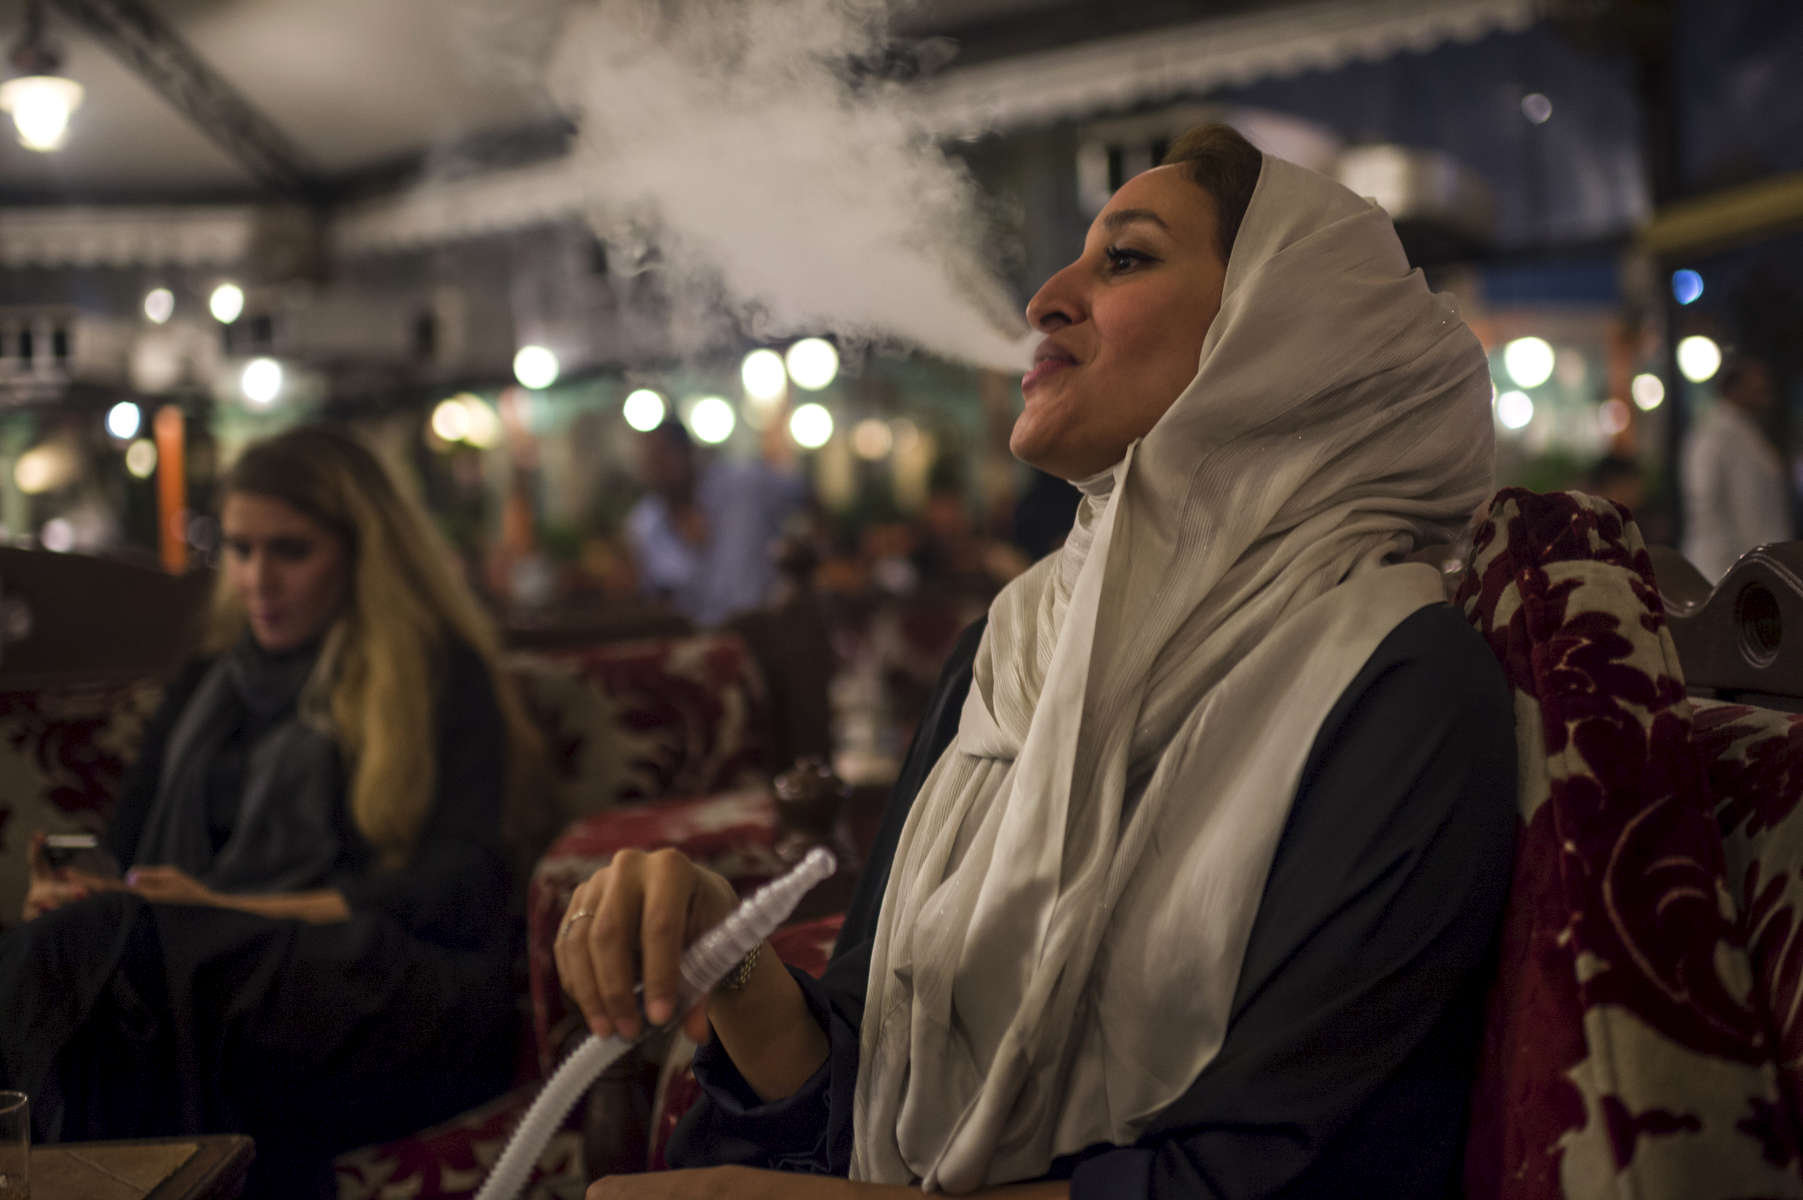 Saudi women smoke sheesha, a traditional Arabic water pipe in a cafe in Jeddah, Saudi Arabia, December 2014. Saudi women in the port city of Jeddah have traditionally been more open, and are permitted to smoke sheesha in public--something that is forbidden in most of the rest of the country.